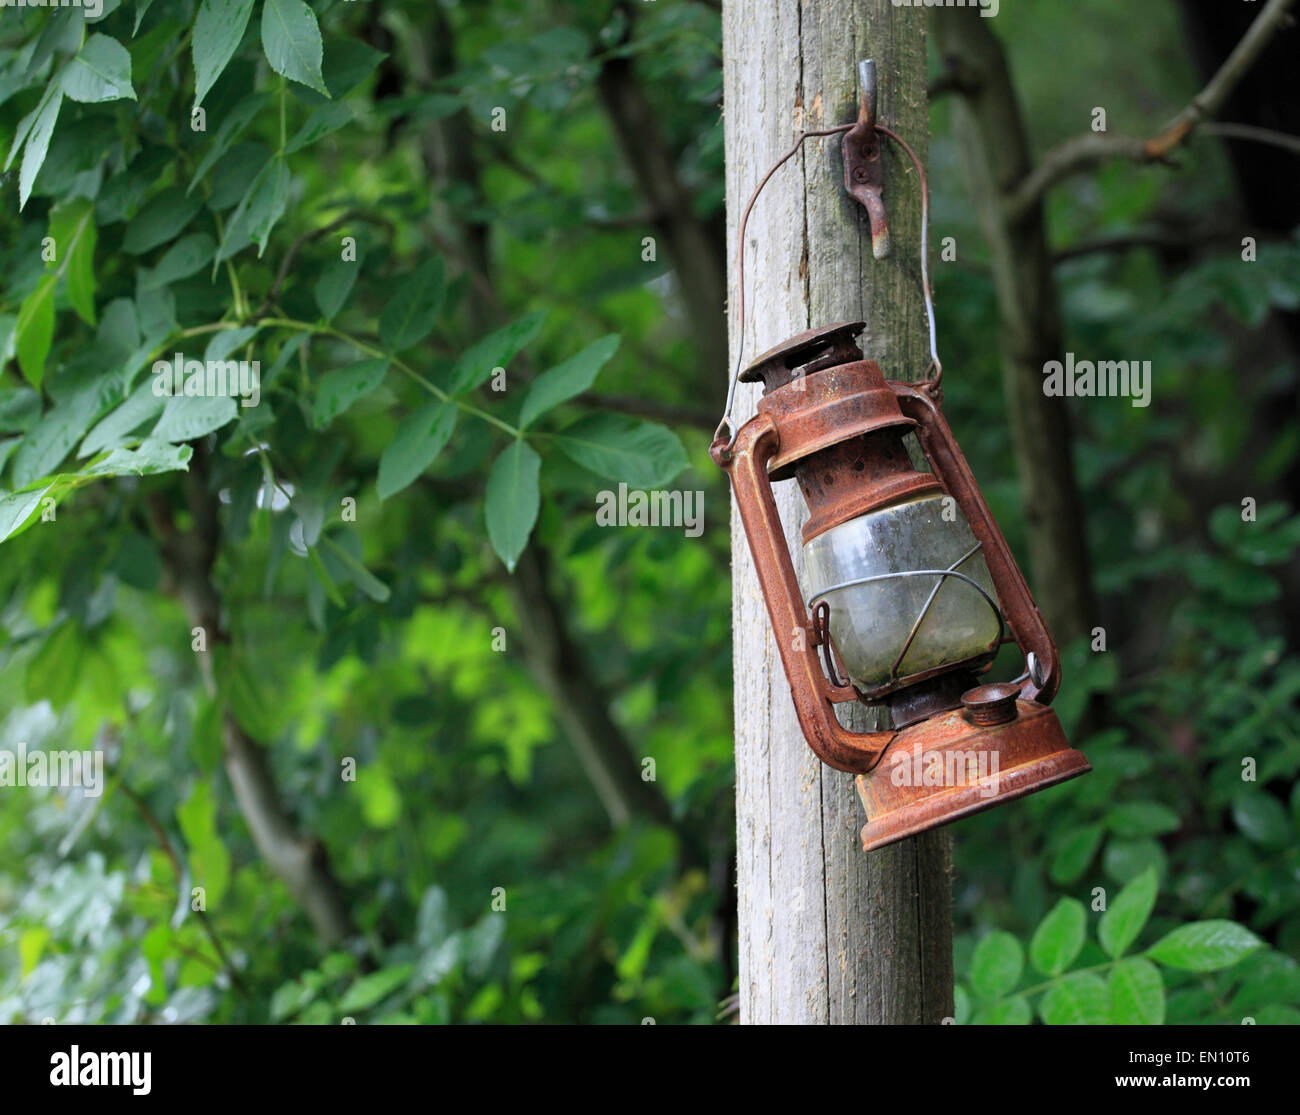 A rusty old lamp hangs forgotten at Vivian Quarry, Llanberis, Snowdonia, Wales, Europe - Stock Image